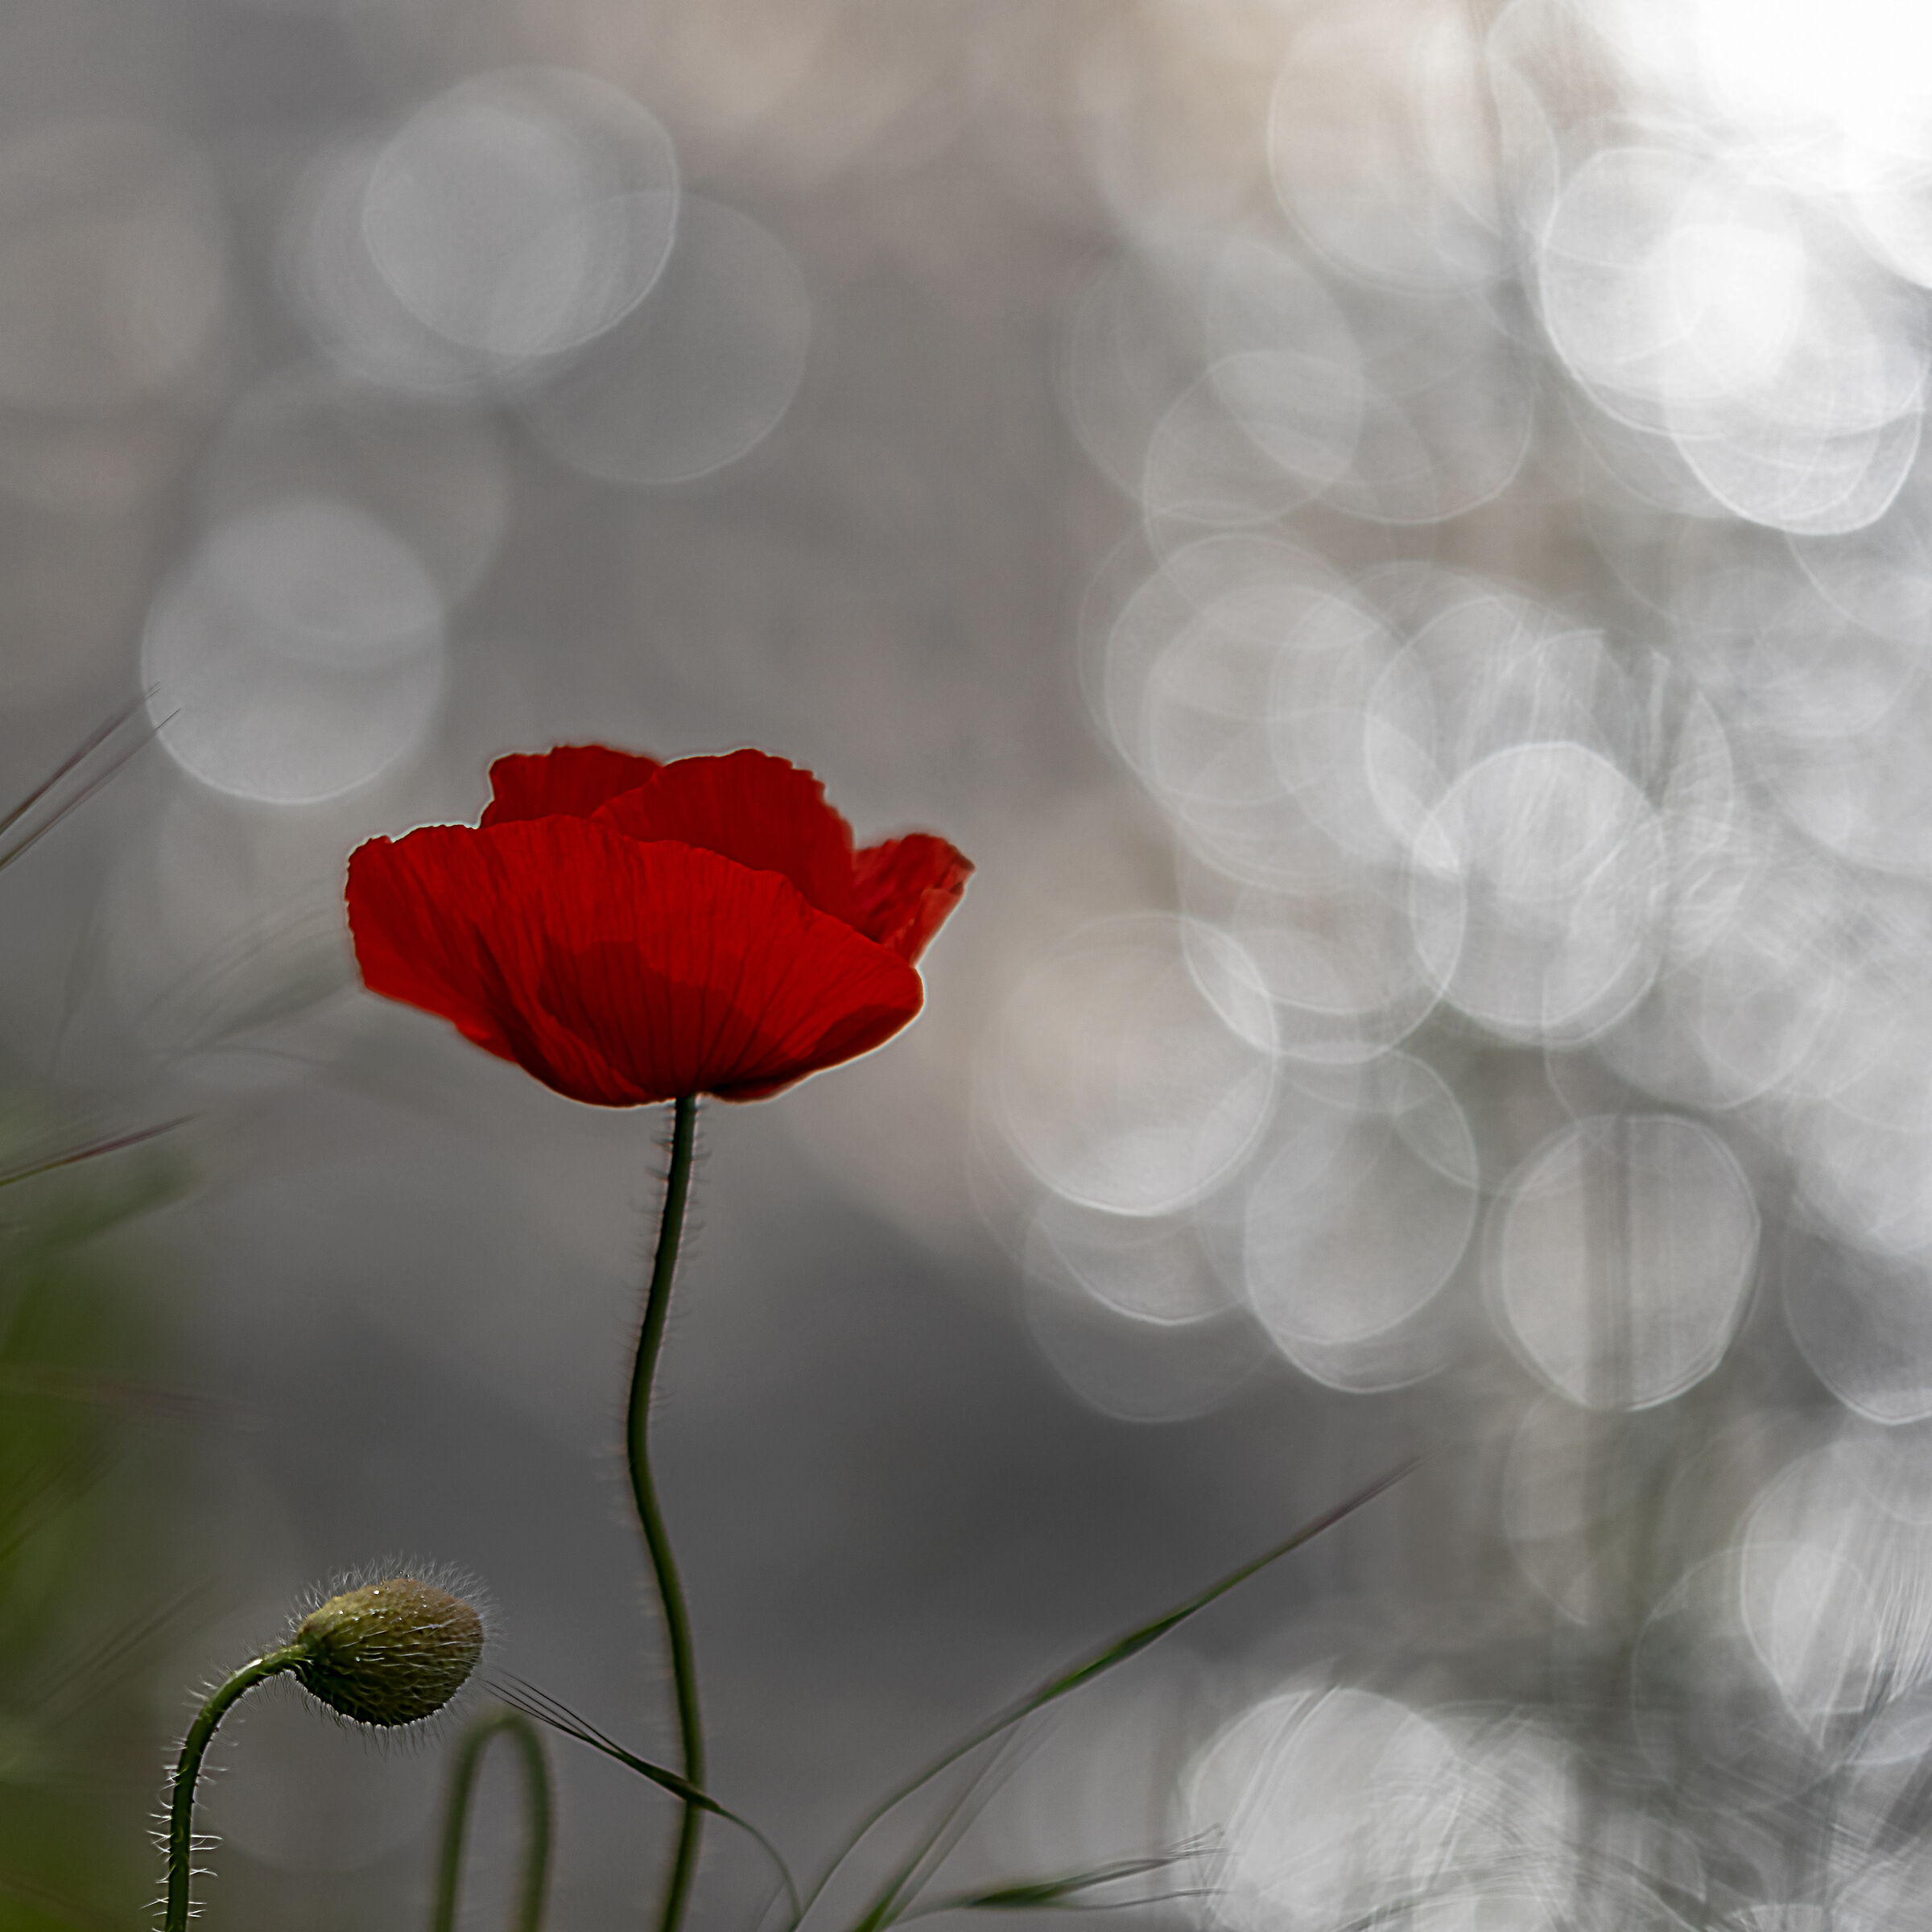 The poppy is also a flower...